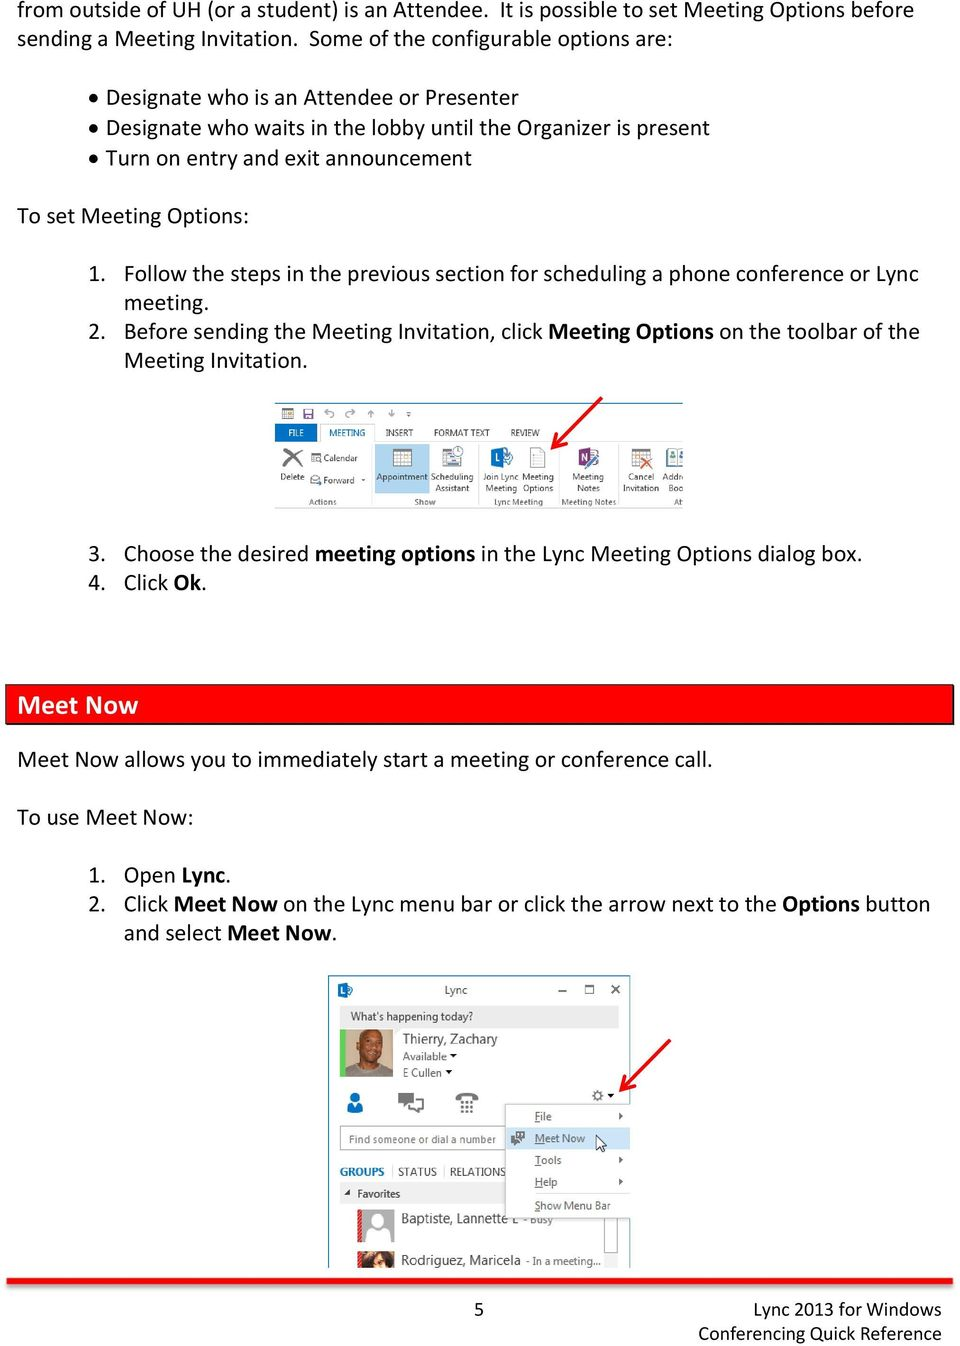 Options: 1. Follow the steps in the previous section for scheduling a phone conference or Lync meeting. 2.